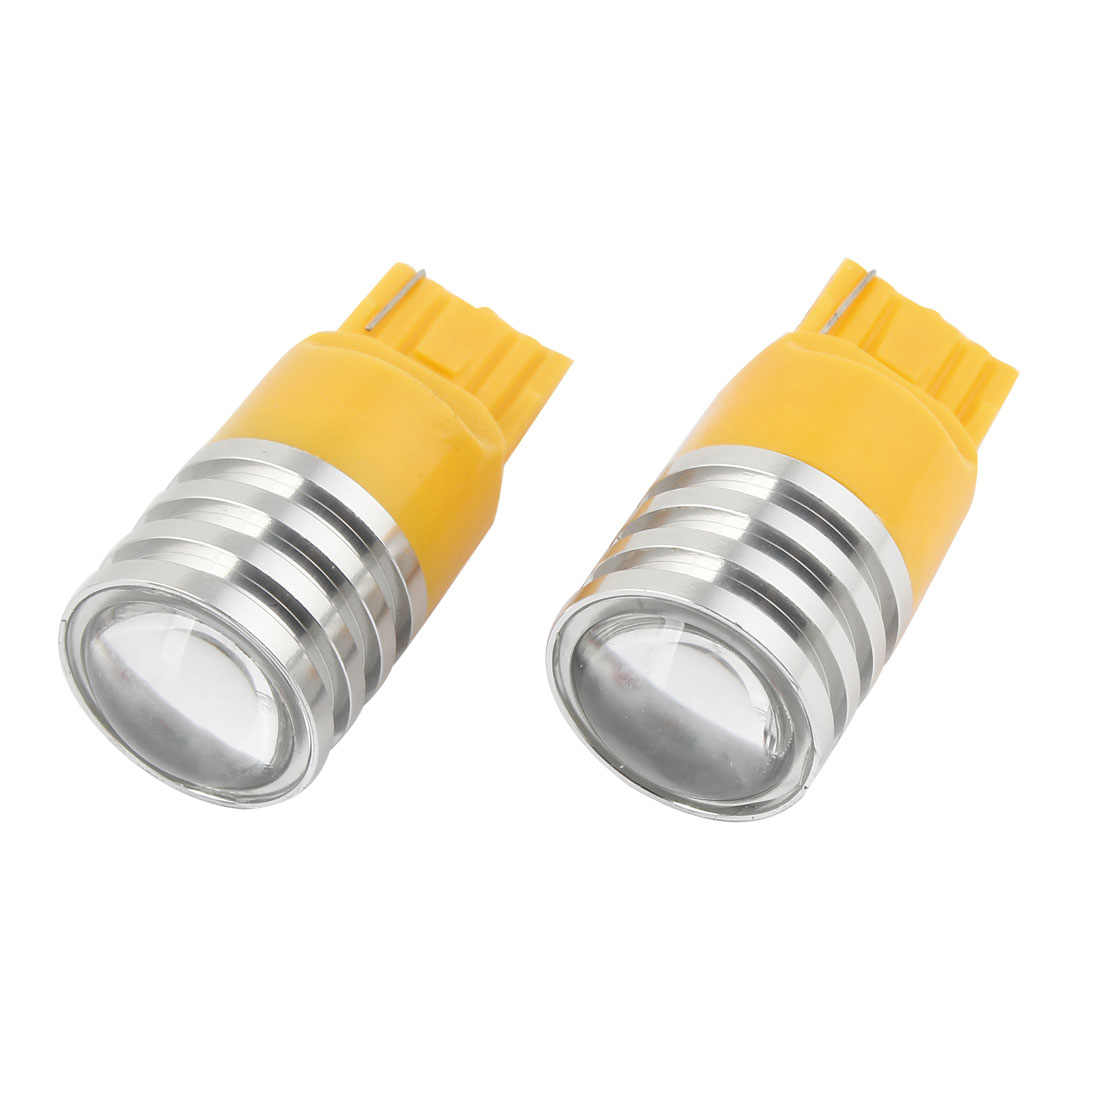 Pair Car T20 7440 SMD LED Yellow Turn Signal Light Braking Lamp Bulb 5W 12V